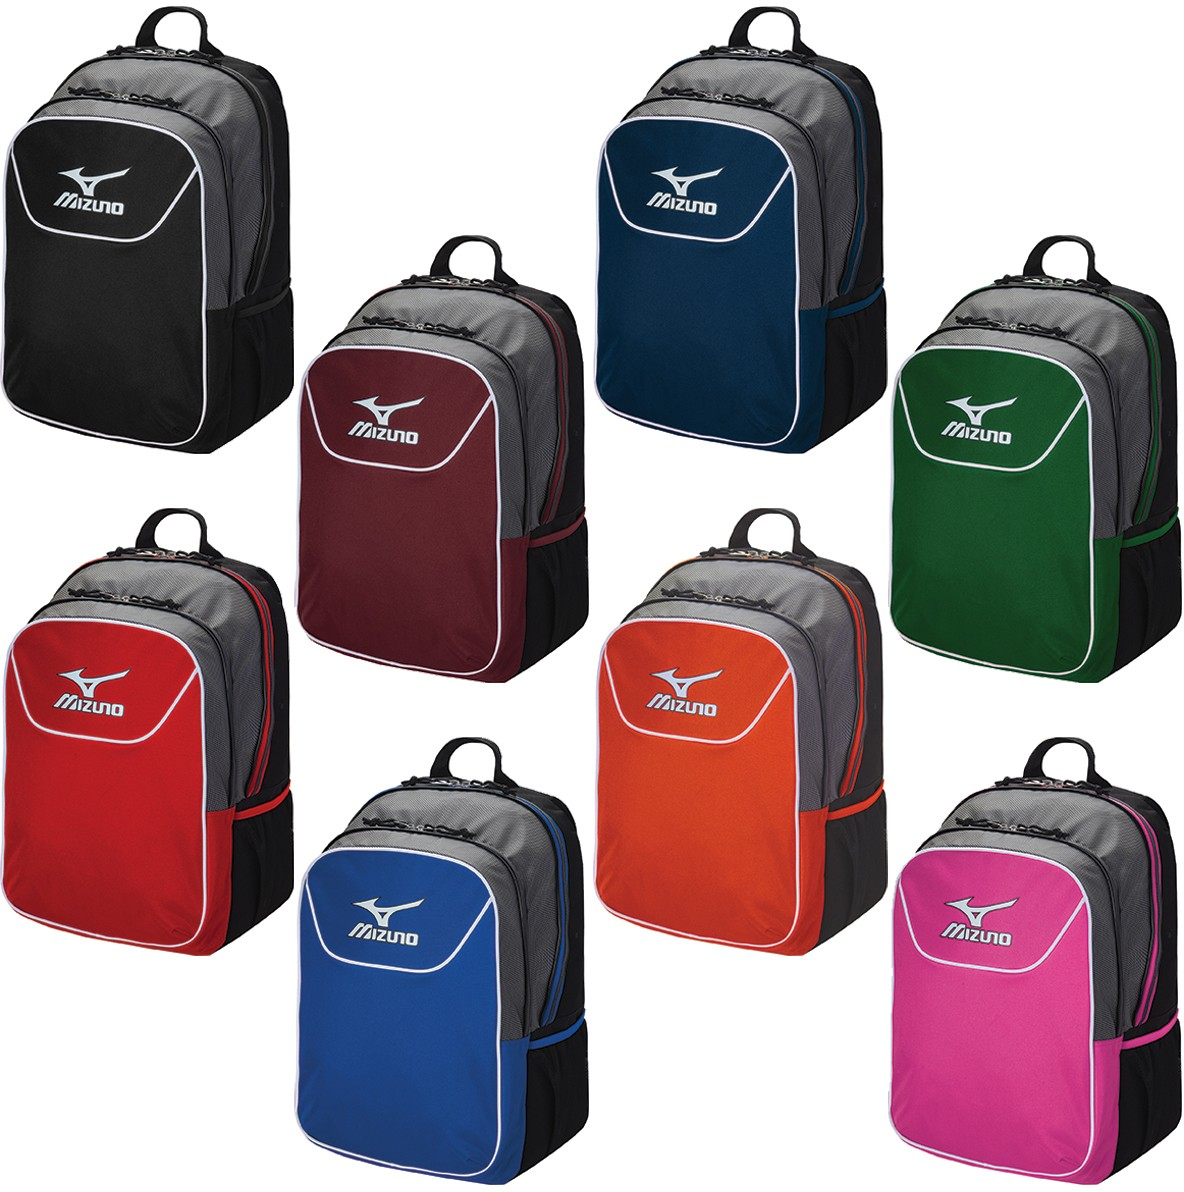 Mizuno Bolt Volleyball Backpack Addthis Sharing Ons